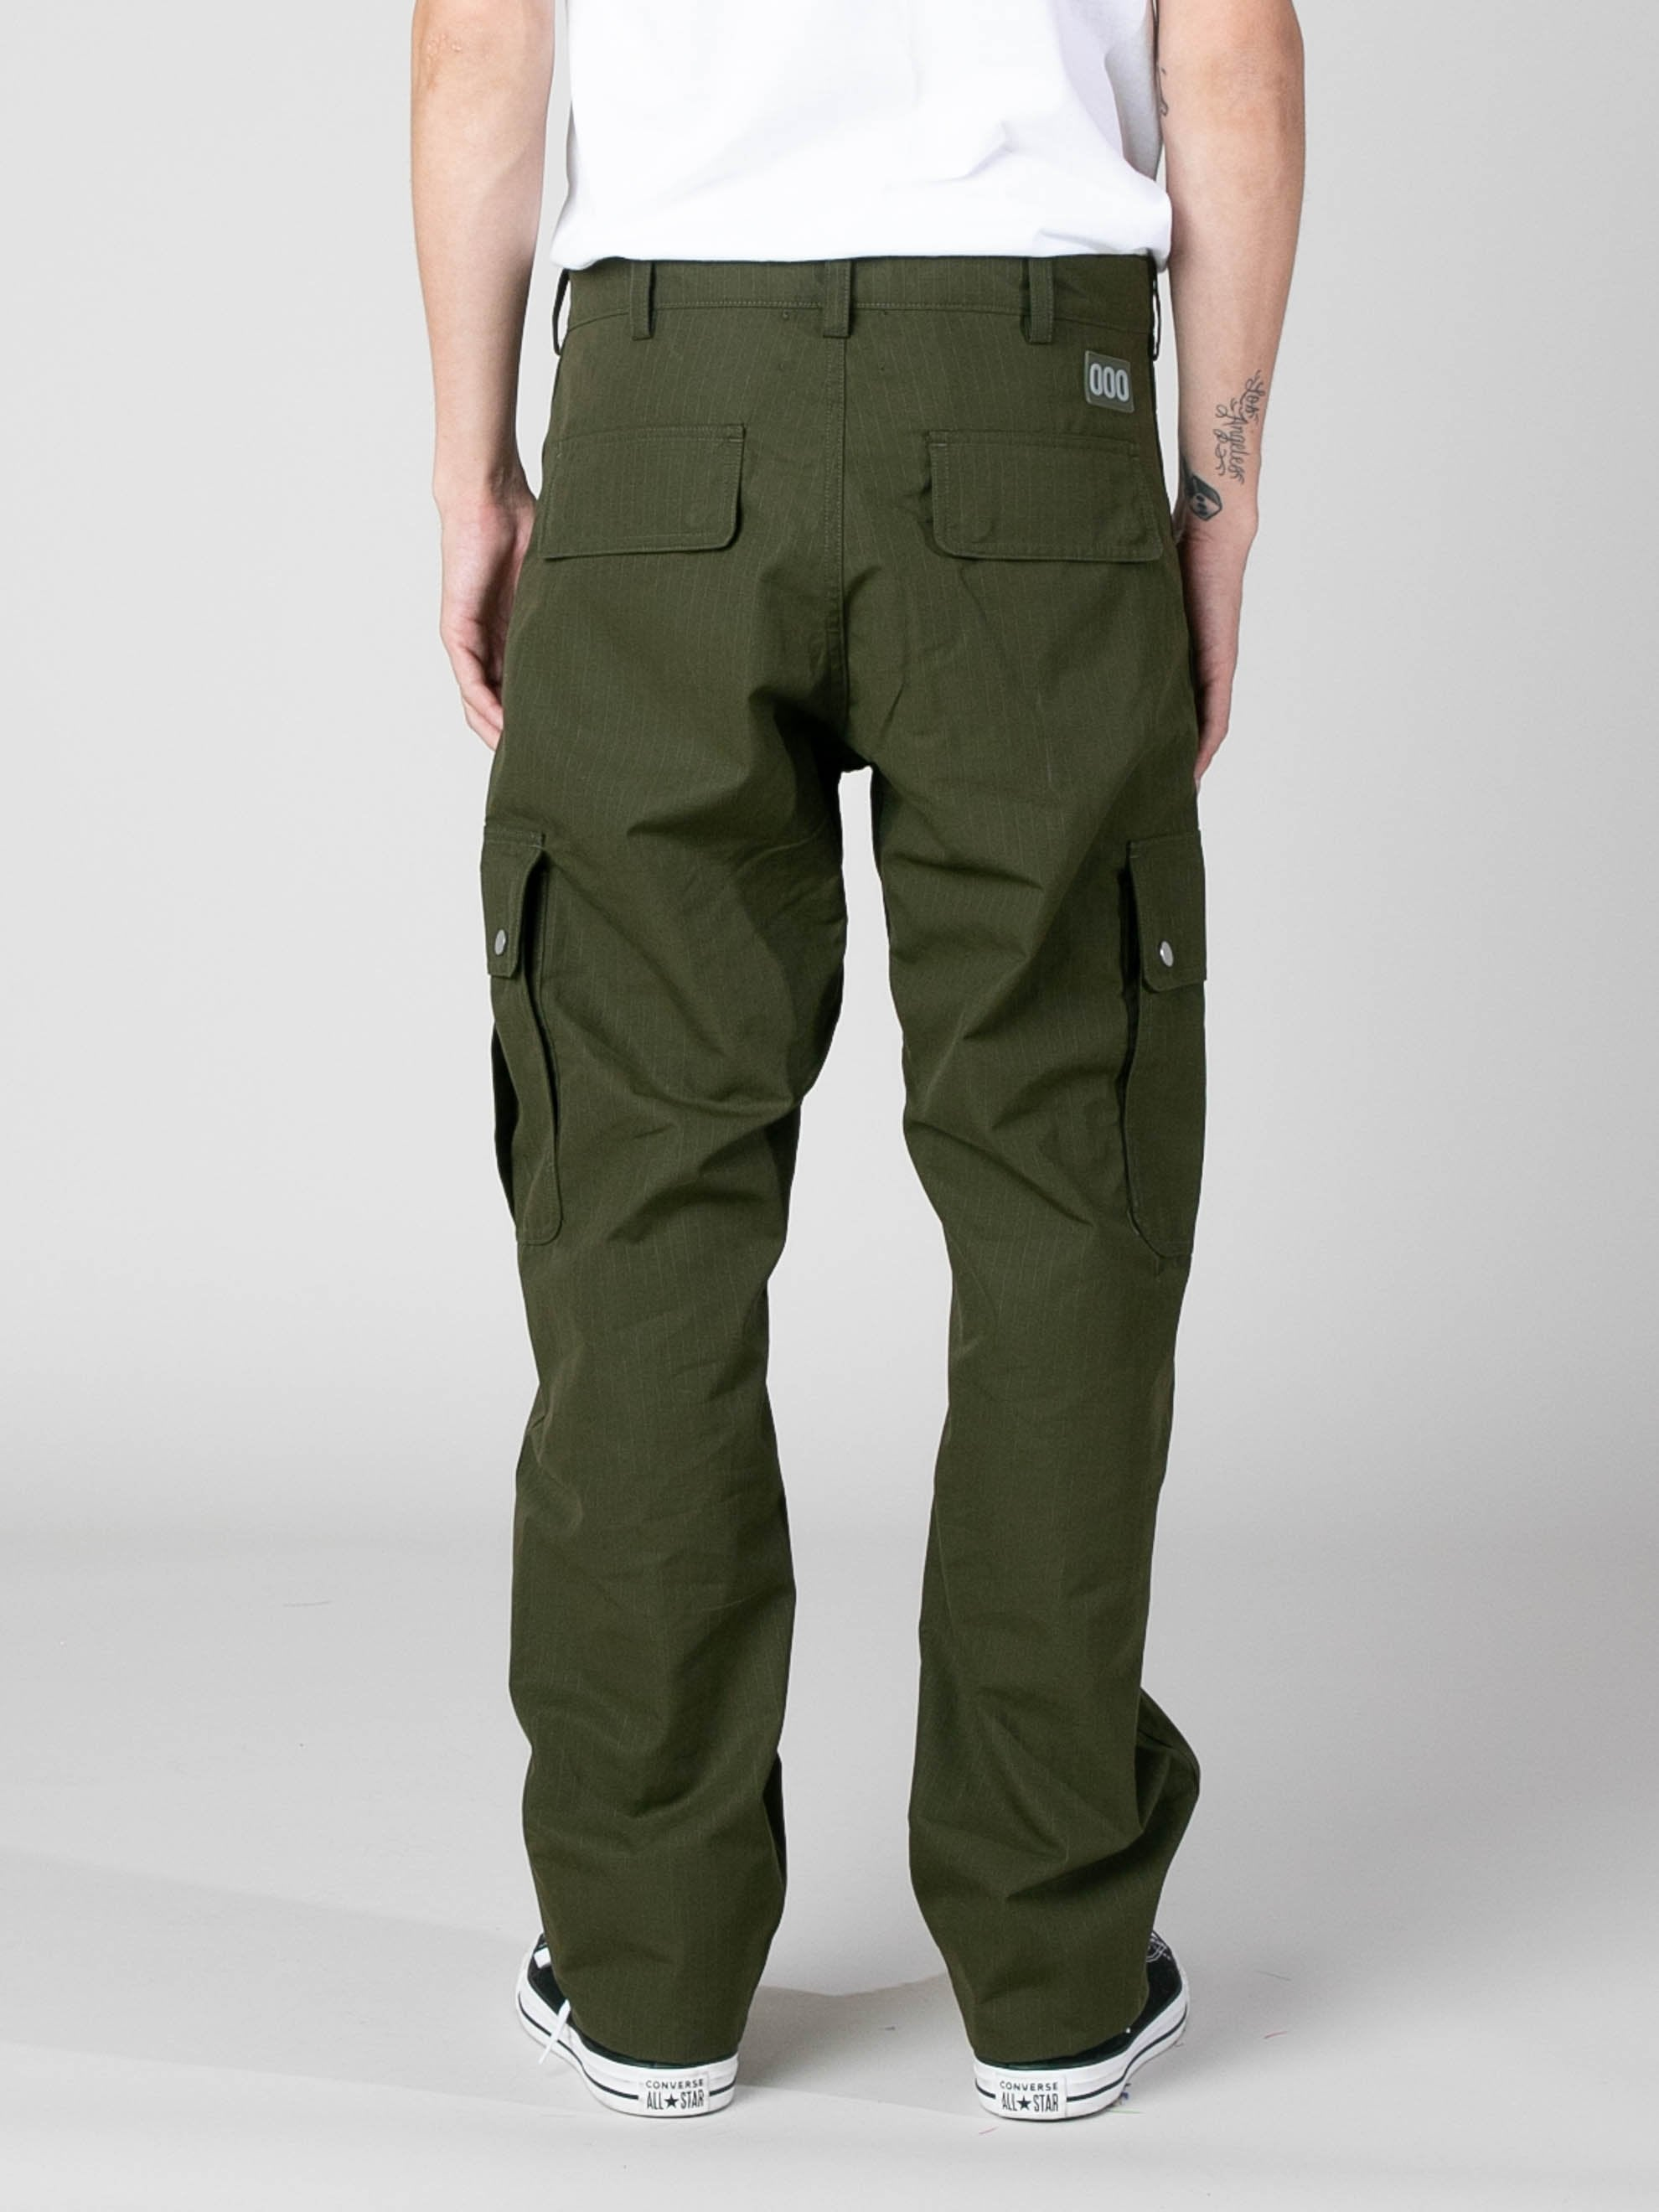 Olive Jungle Pants 6